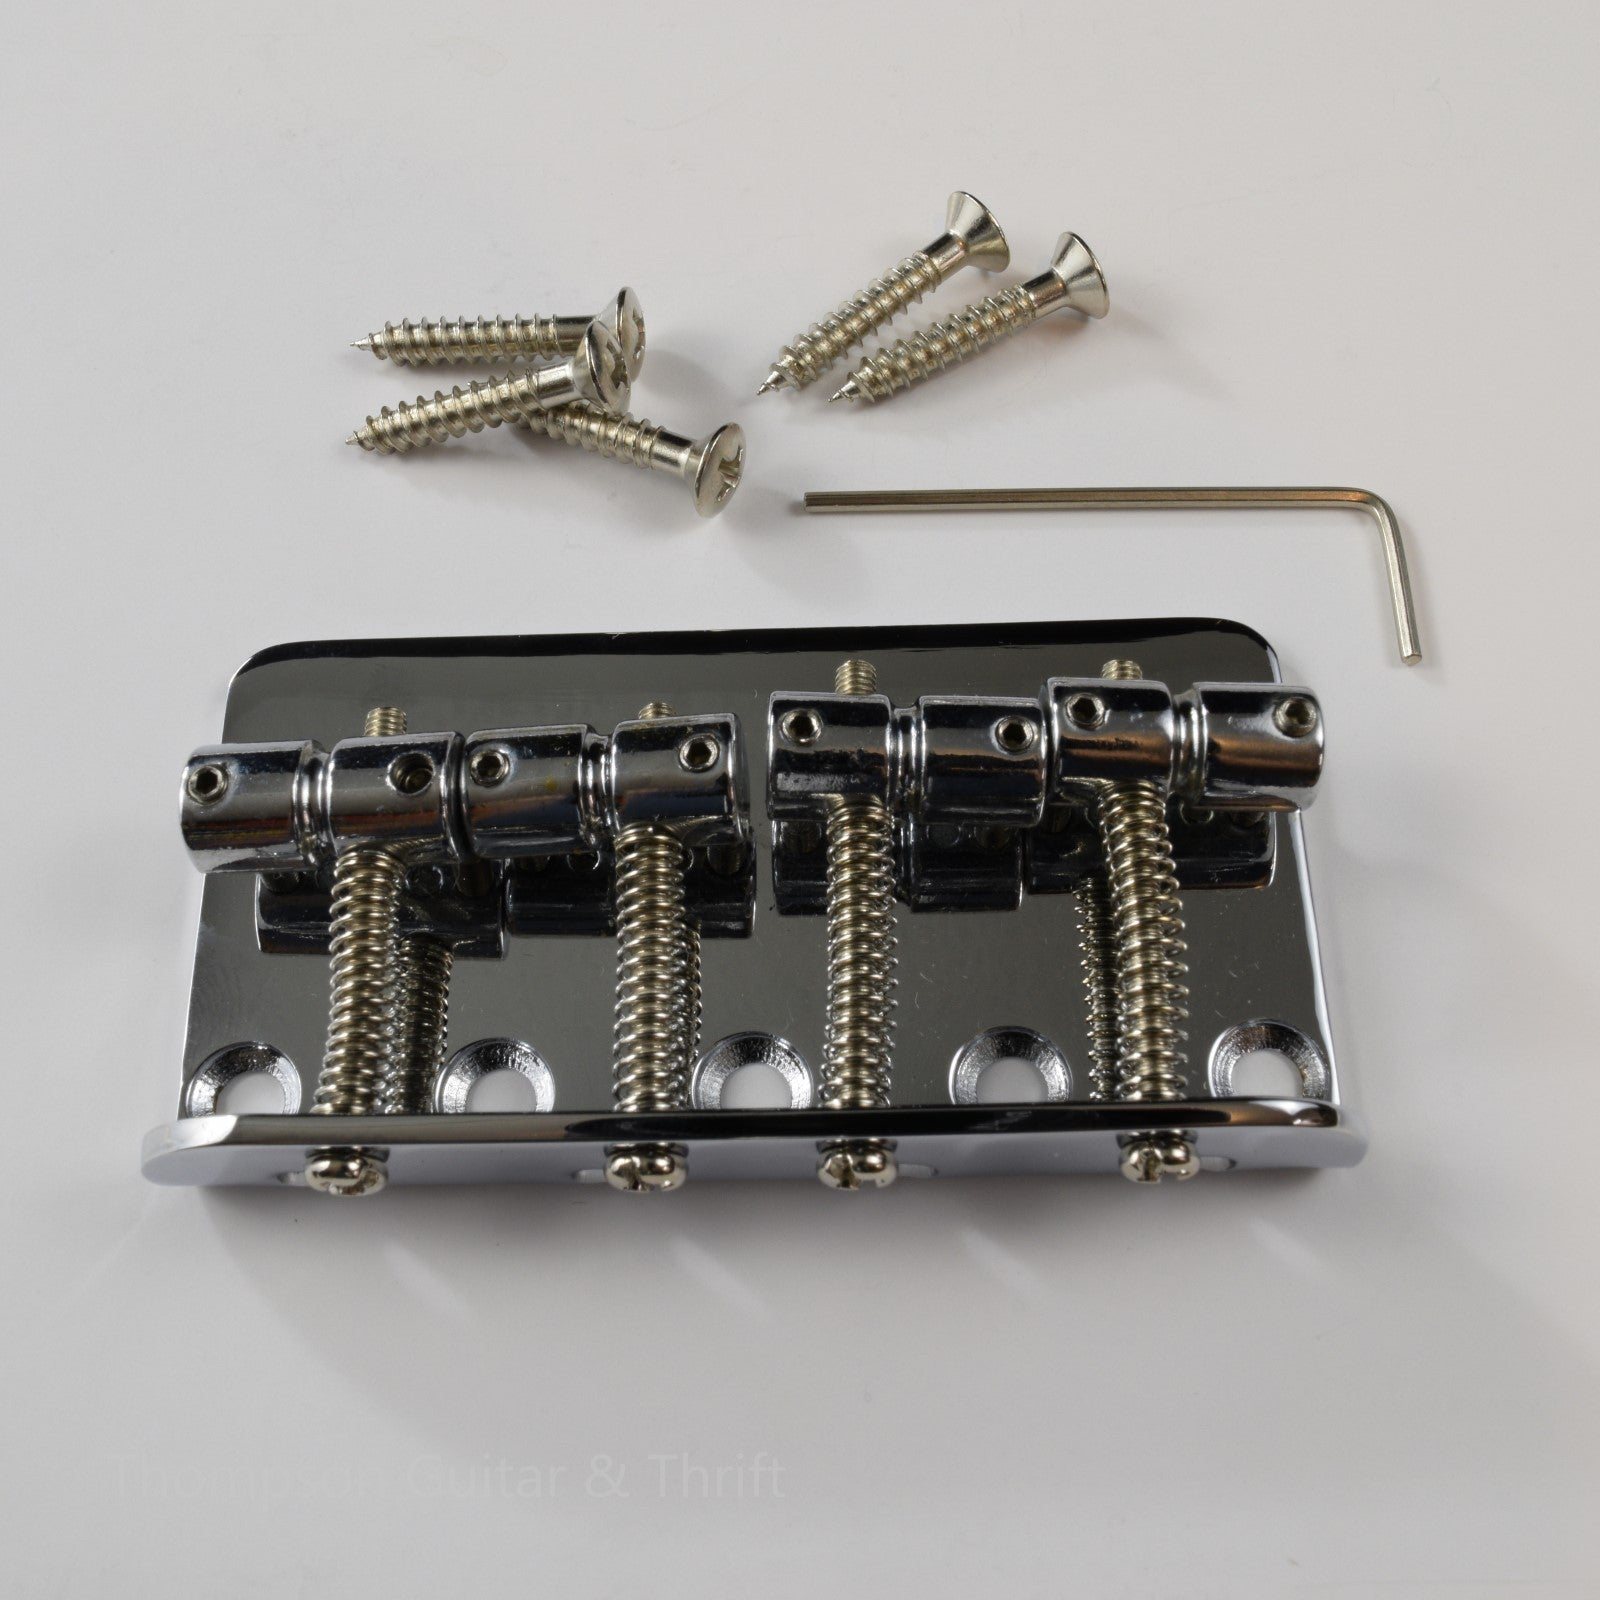 Standard Bass Bridge in Chrome, Black and Gold